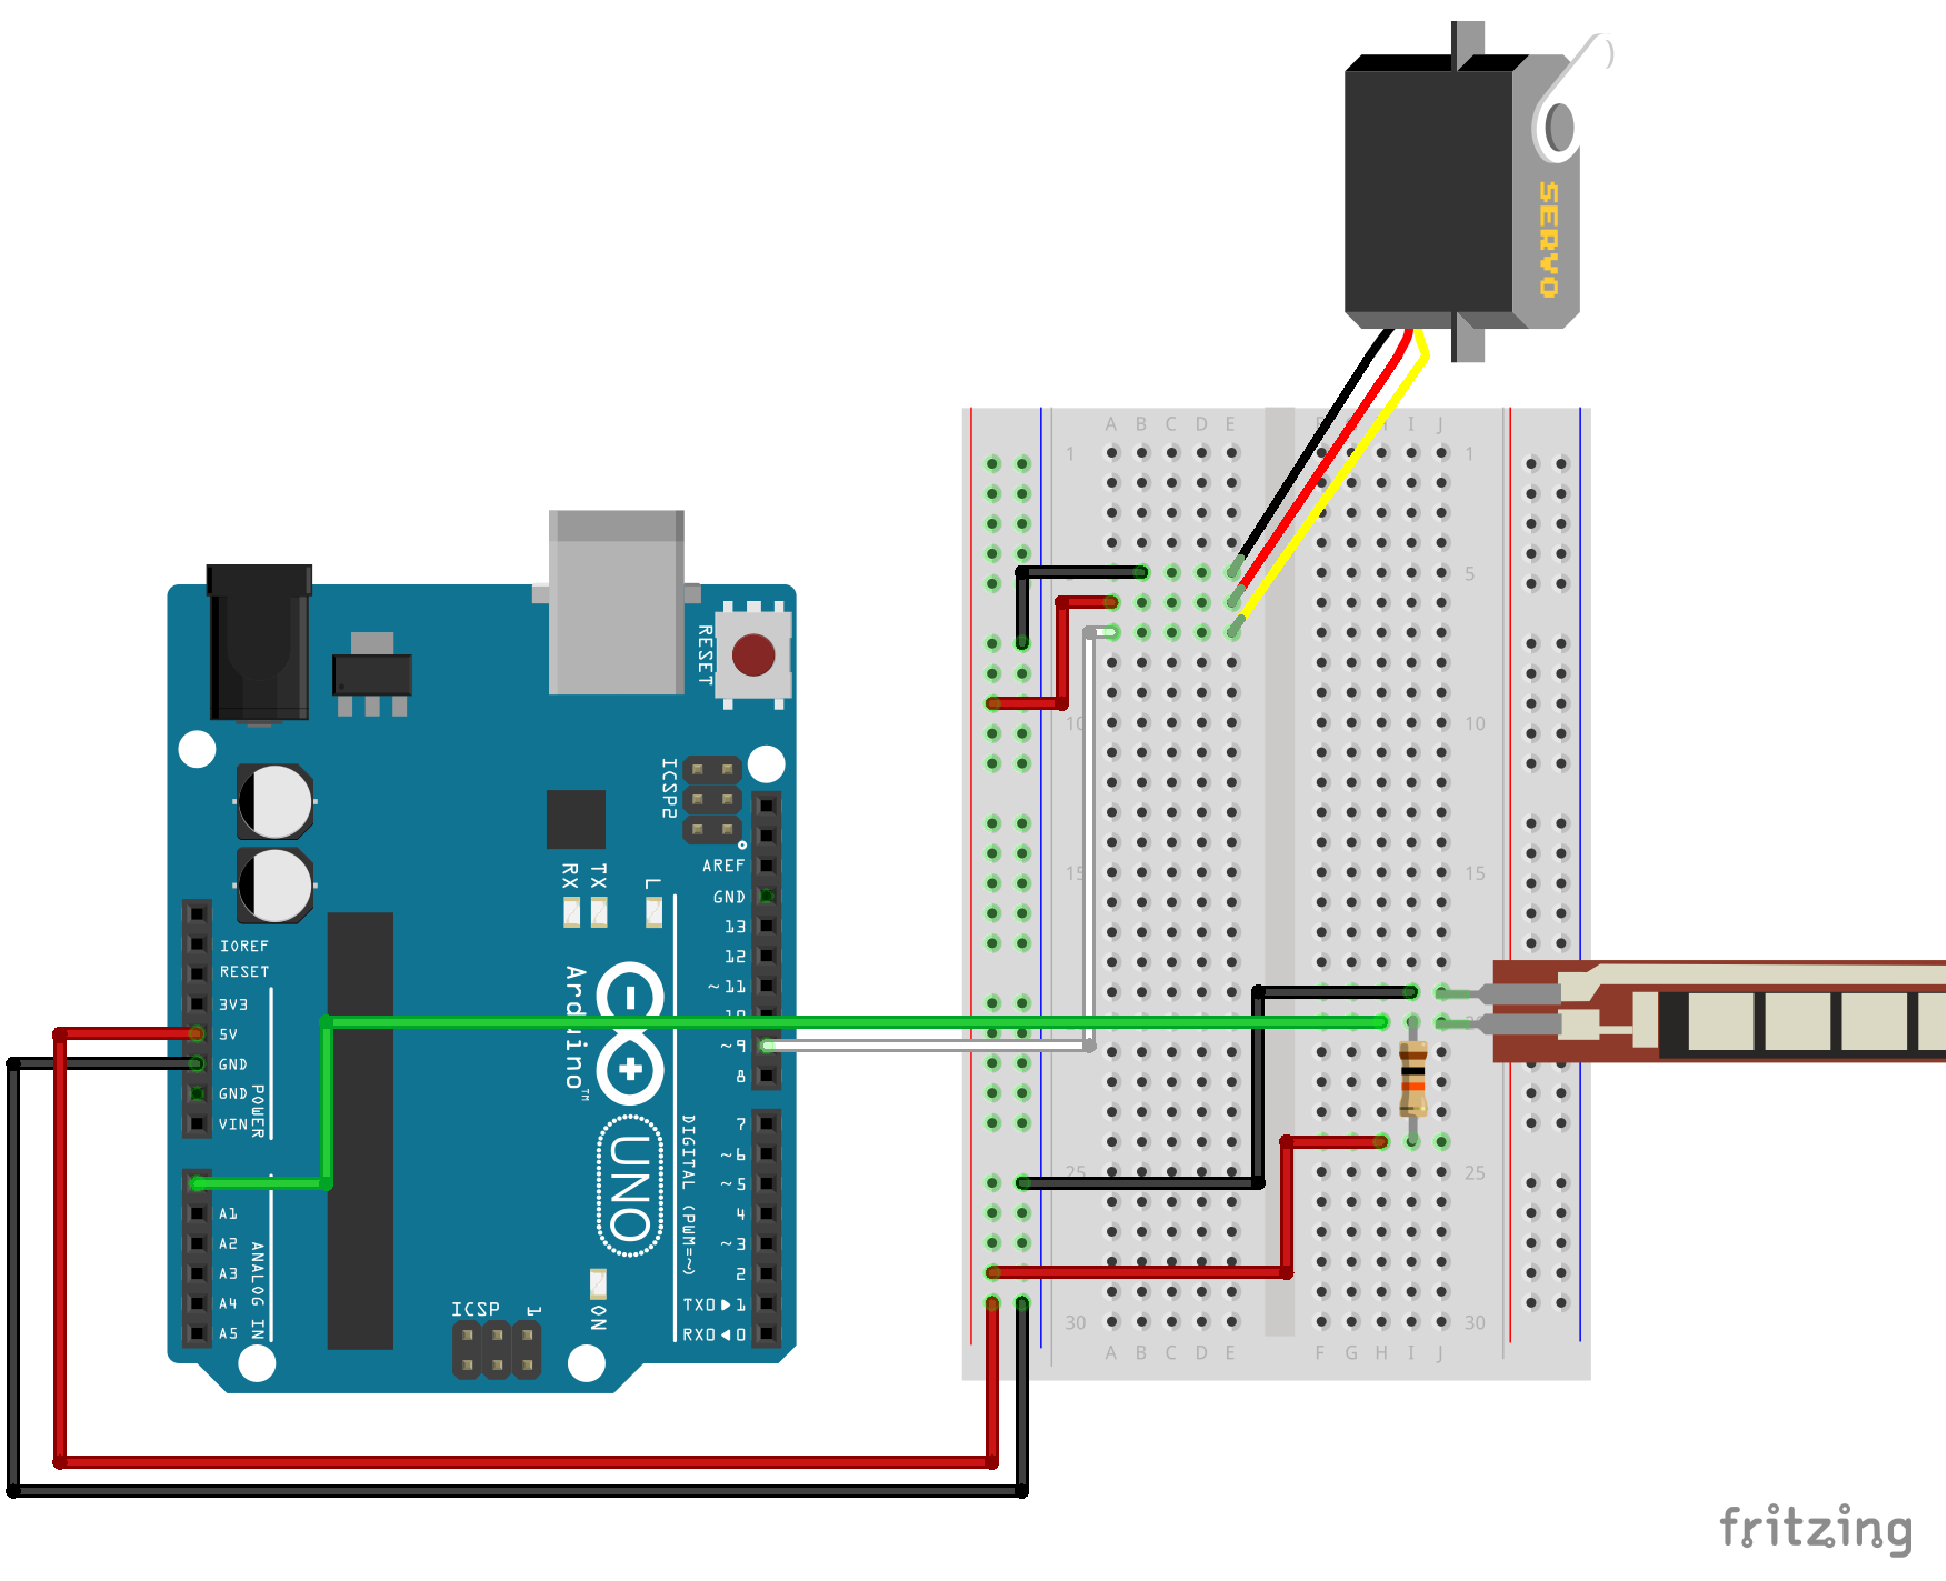 Arduino Servo Wiring Diagram Free Download Light Sensor Circuit Page 3 Sensors Detectors Circuits Nextgr Sik Experiment Guide For V3 2 Learn Sparkfun Com